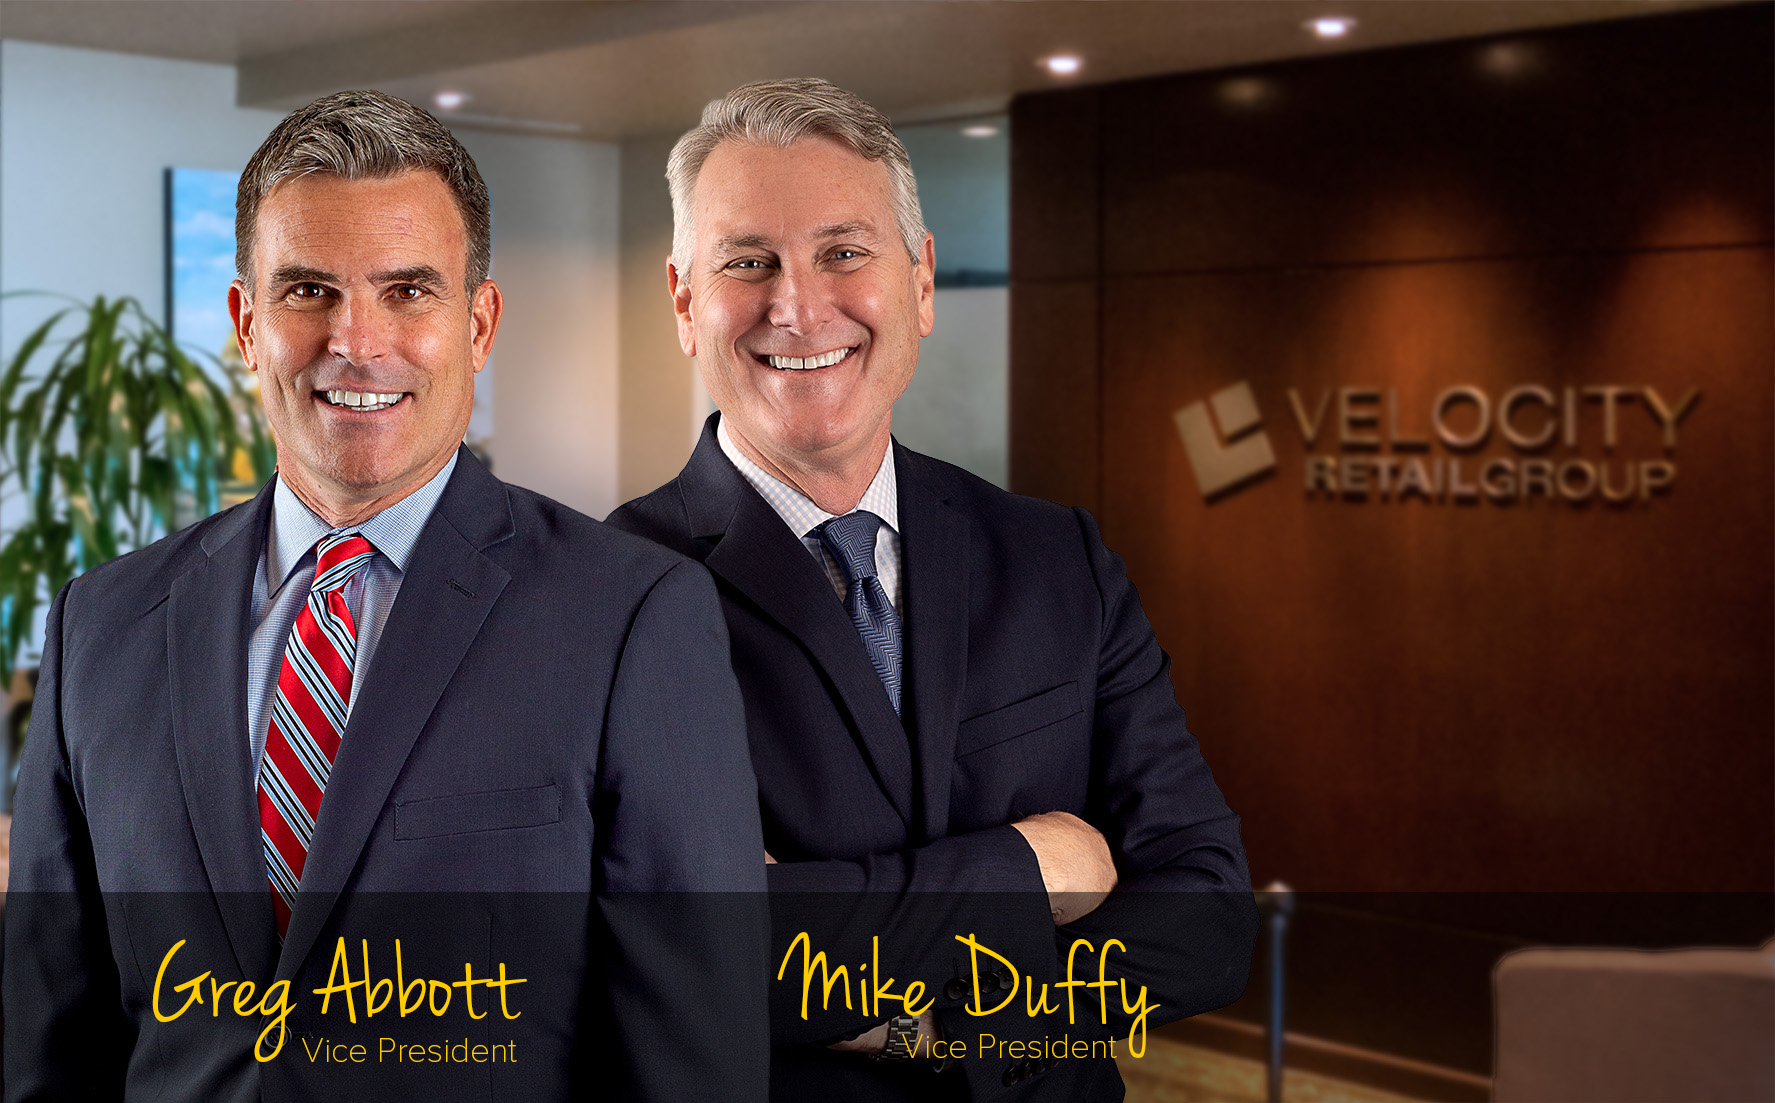 Experienced Investment Team Joins Velocity Retail Group 2